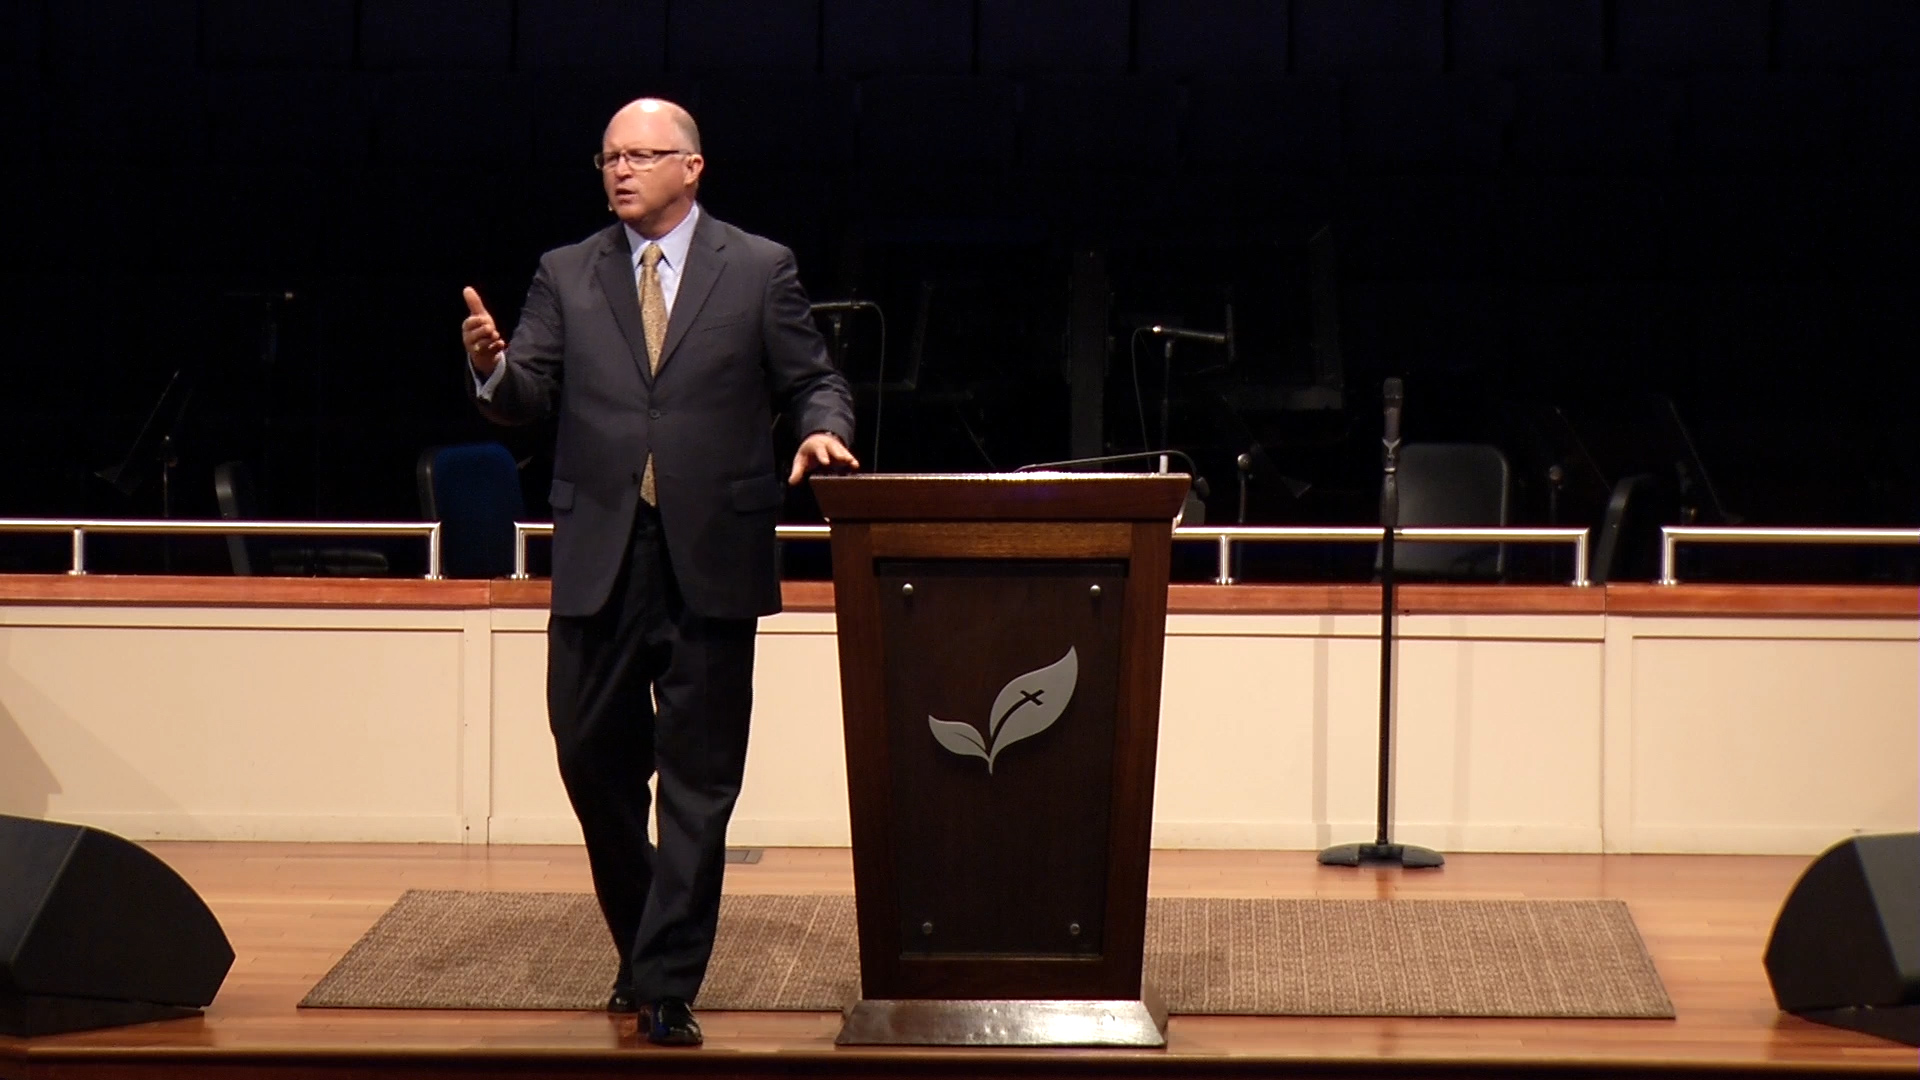 Pastor Paul Chappell: Three Gifts from your Heavenly Father